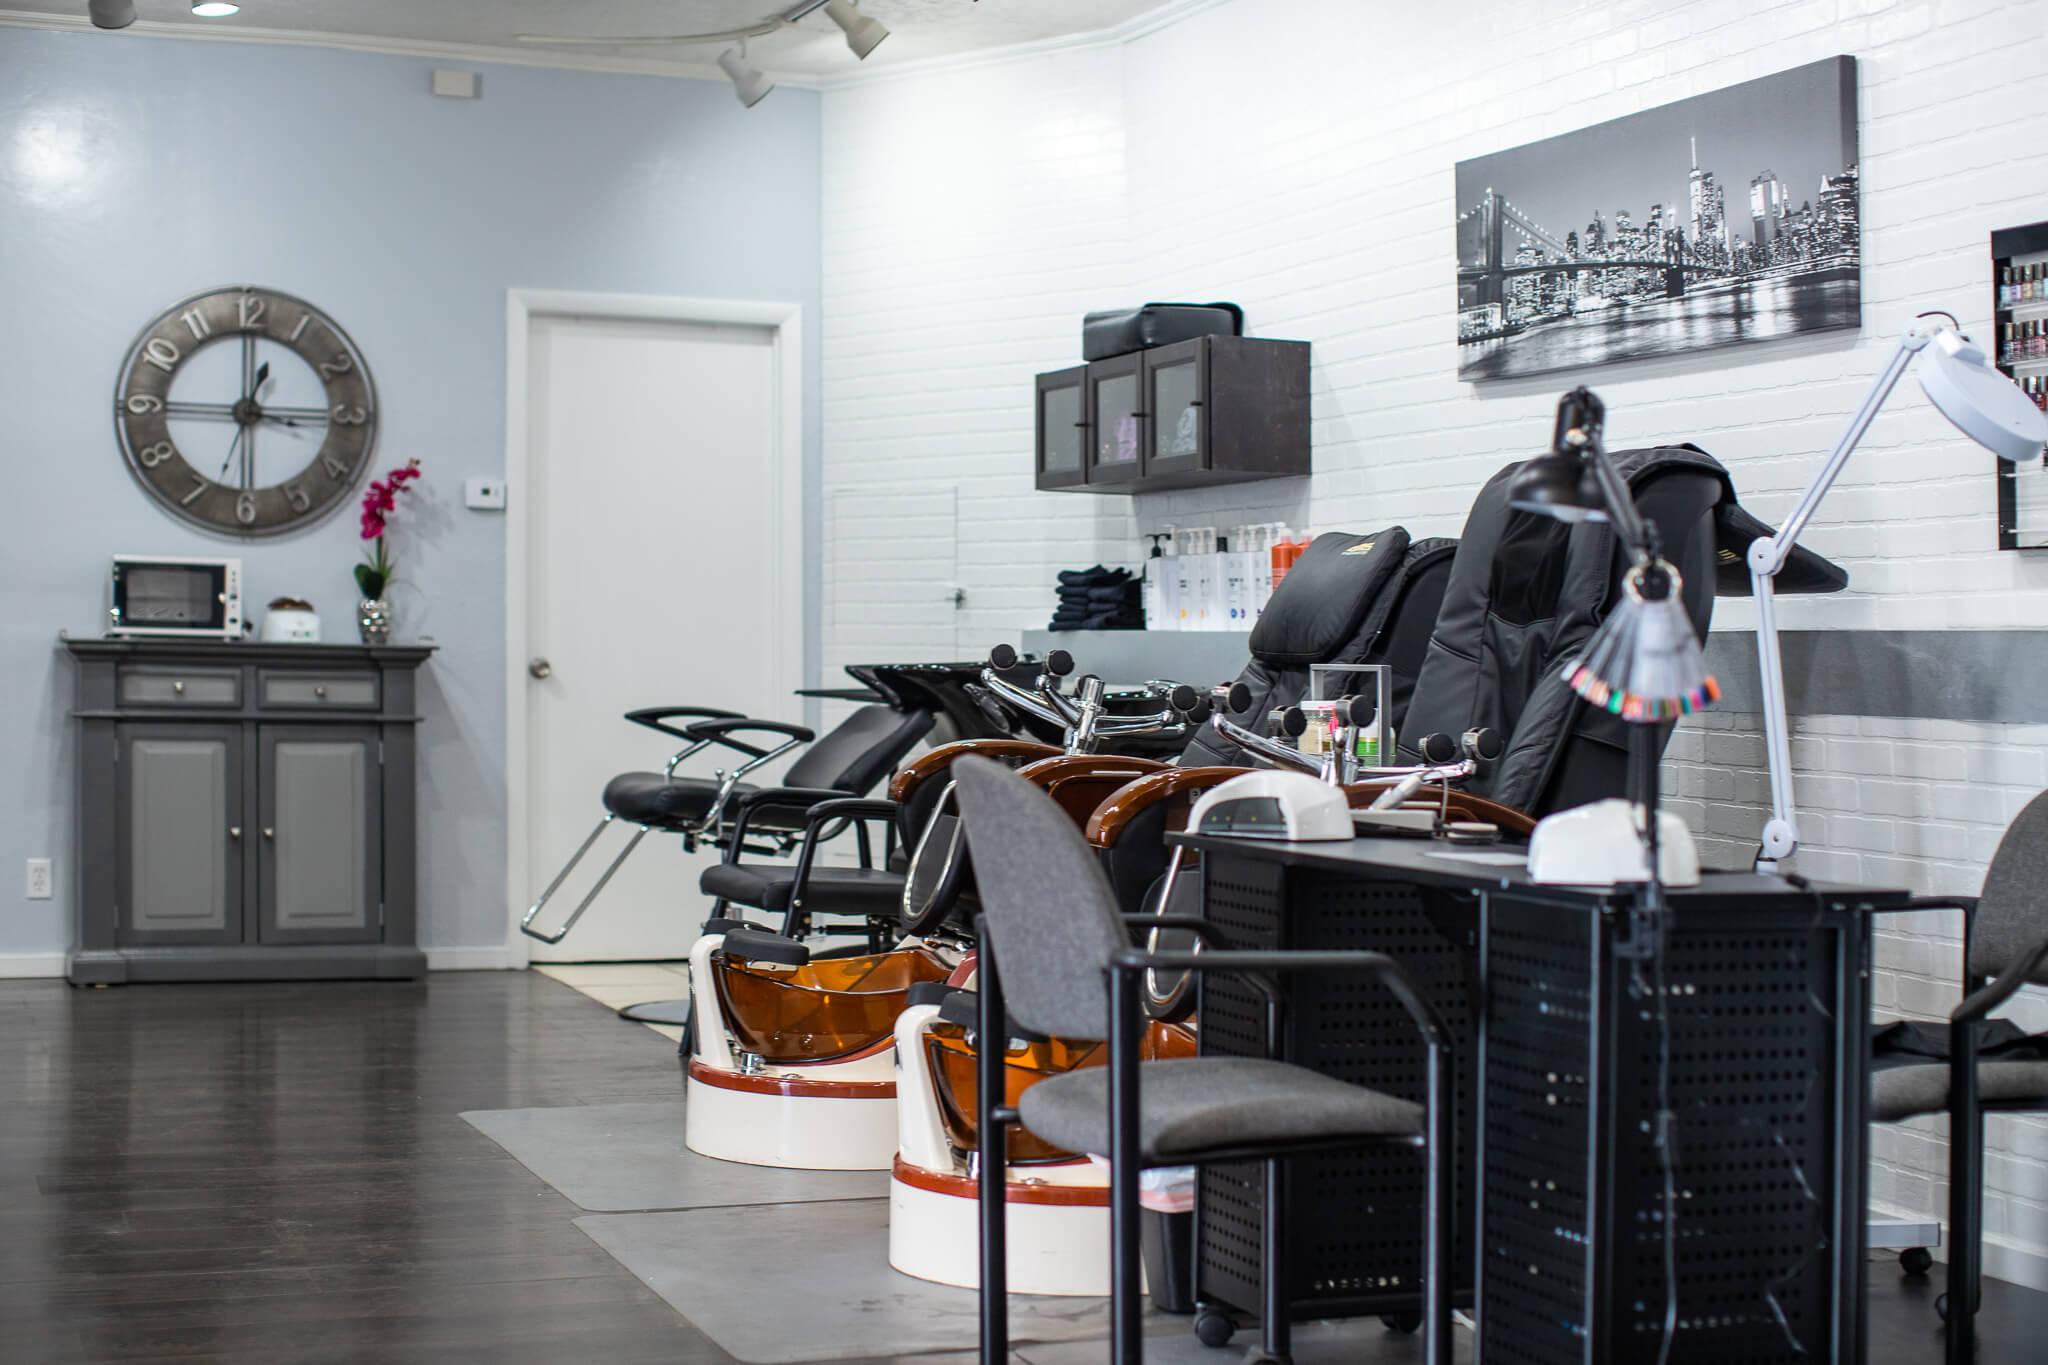 Salon and pedicure chairs